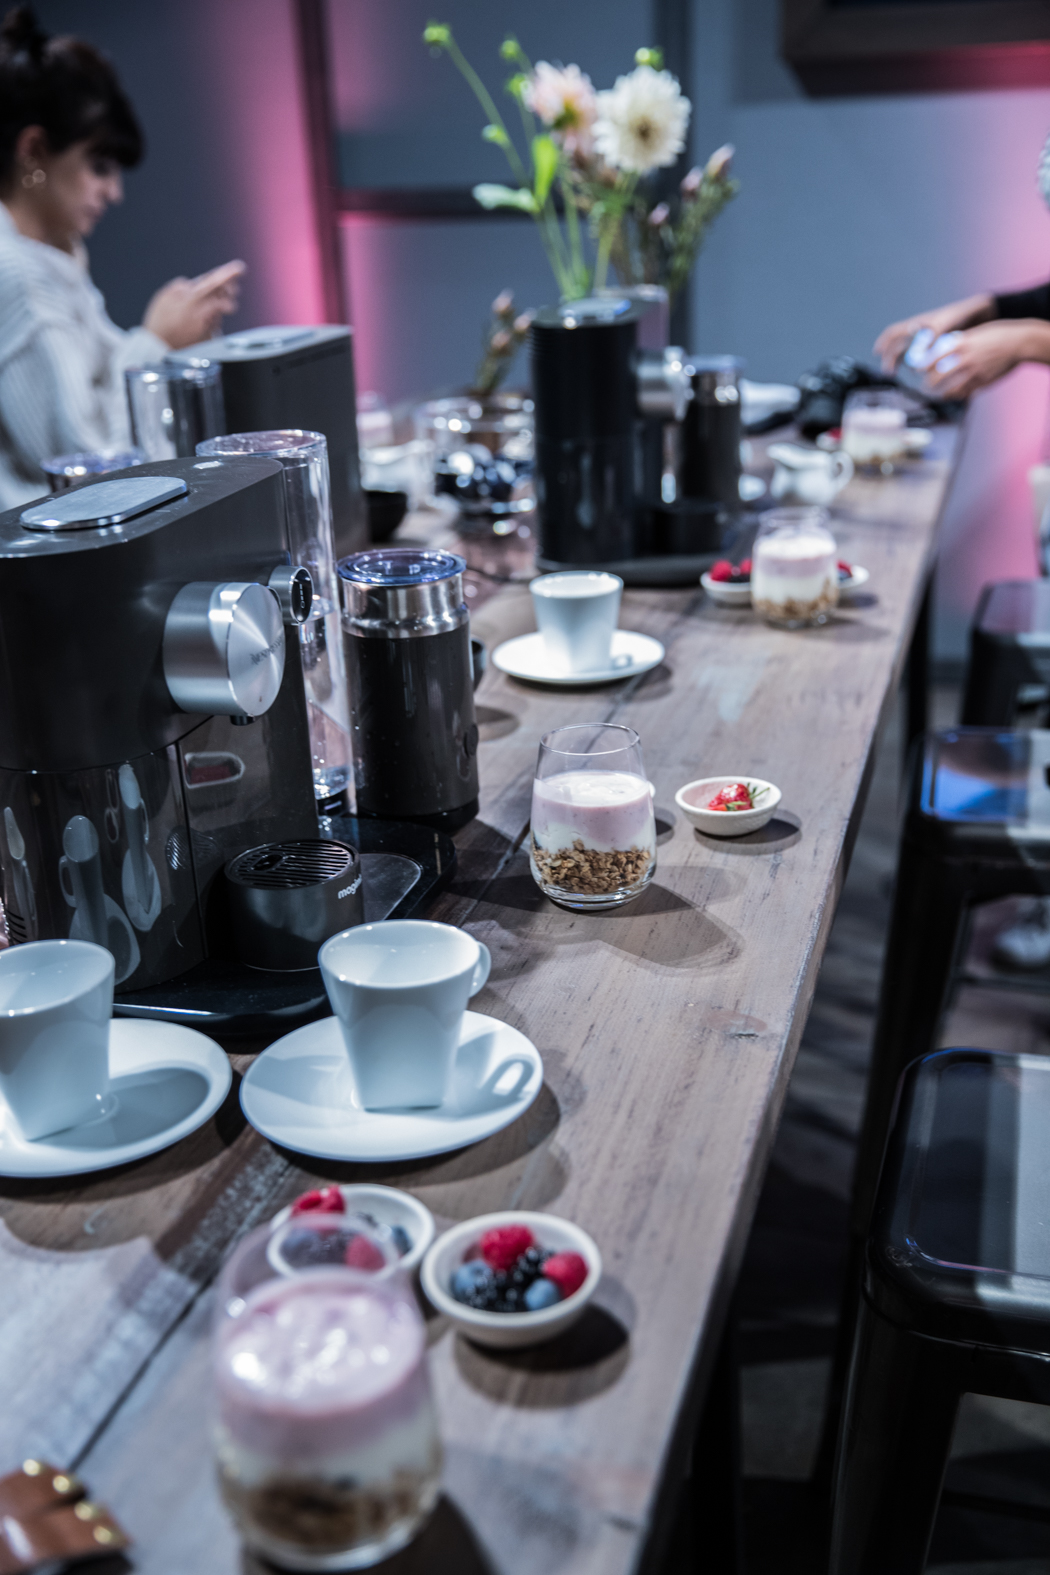 foodblog-foodblogger-food-blog-blogger-nespresso-kaffee-lindarella-london-10